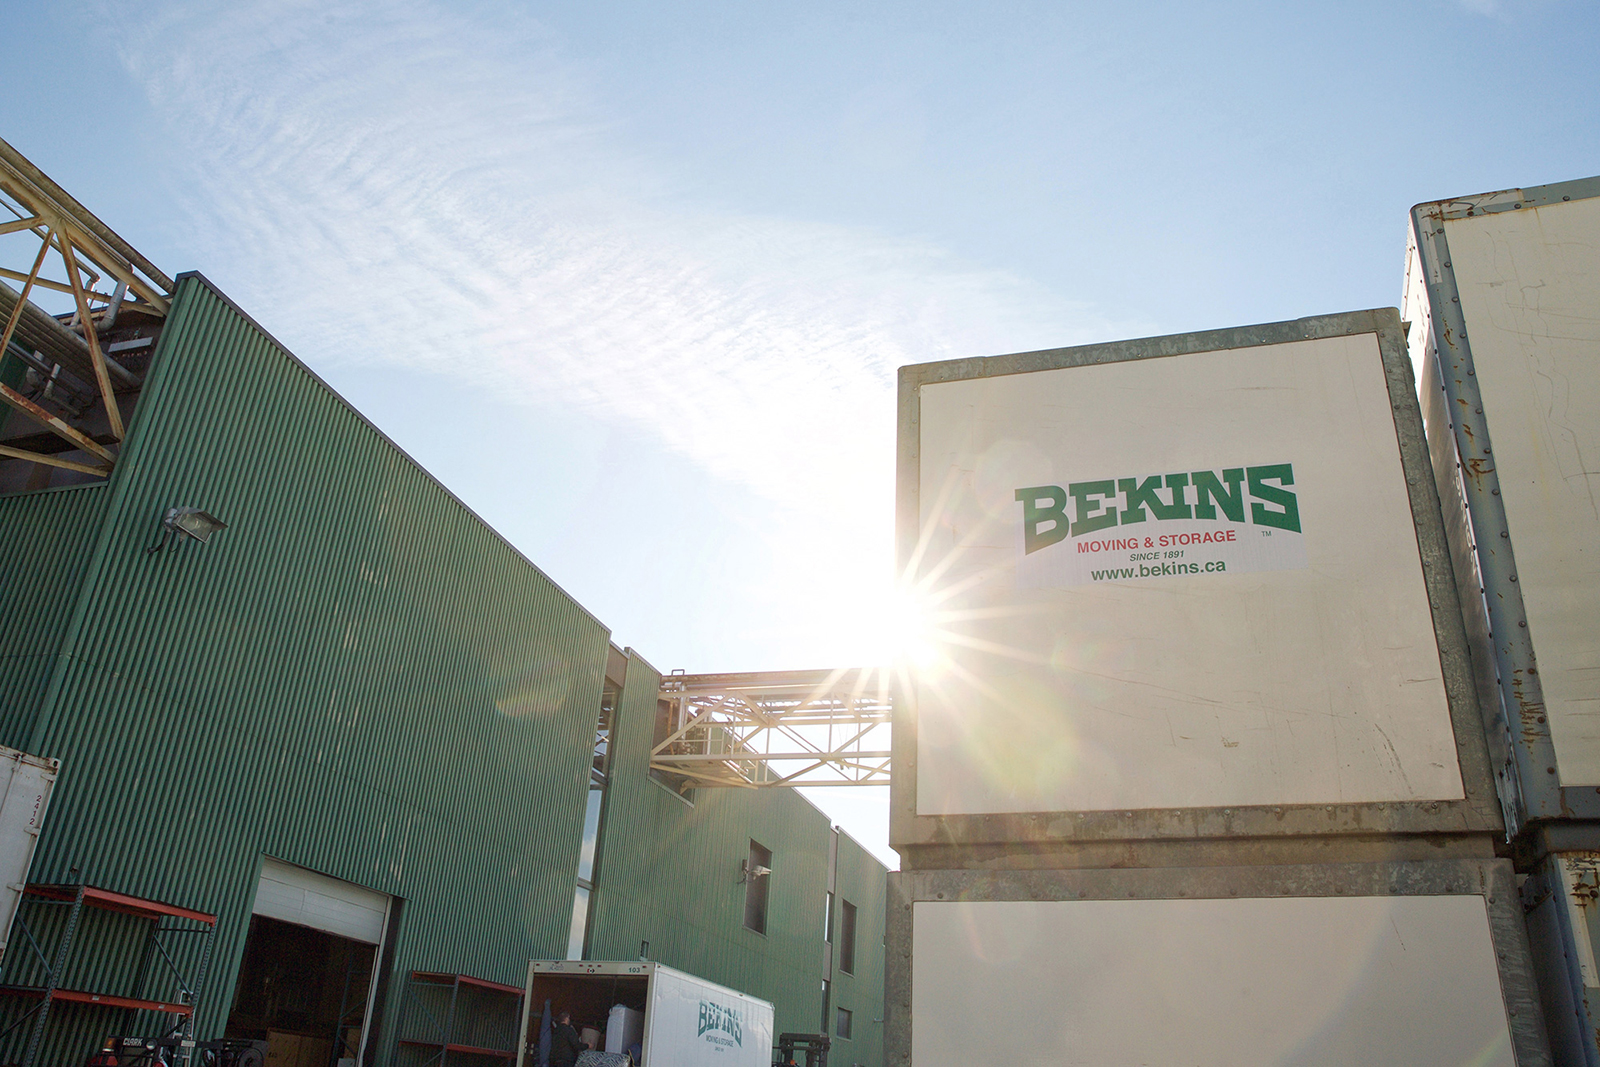 Bekins Moving & Storage Vancouver Island Canada Moving